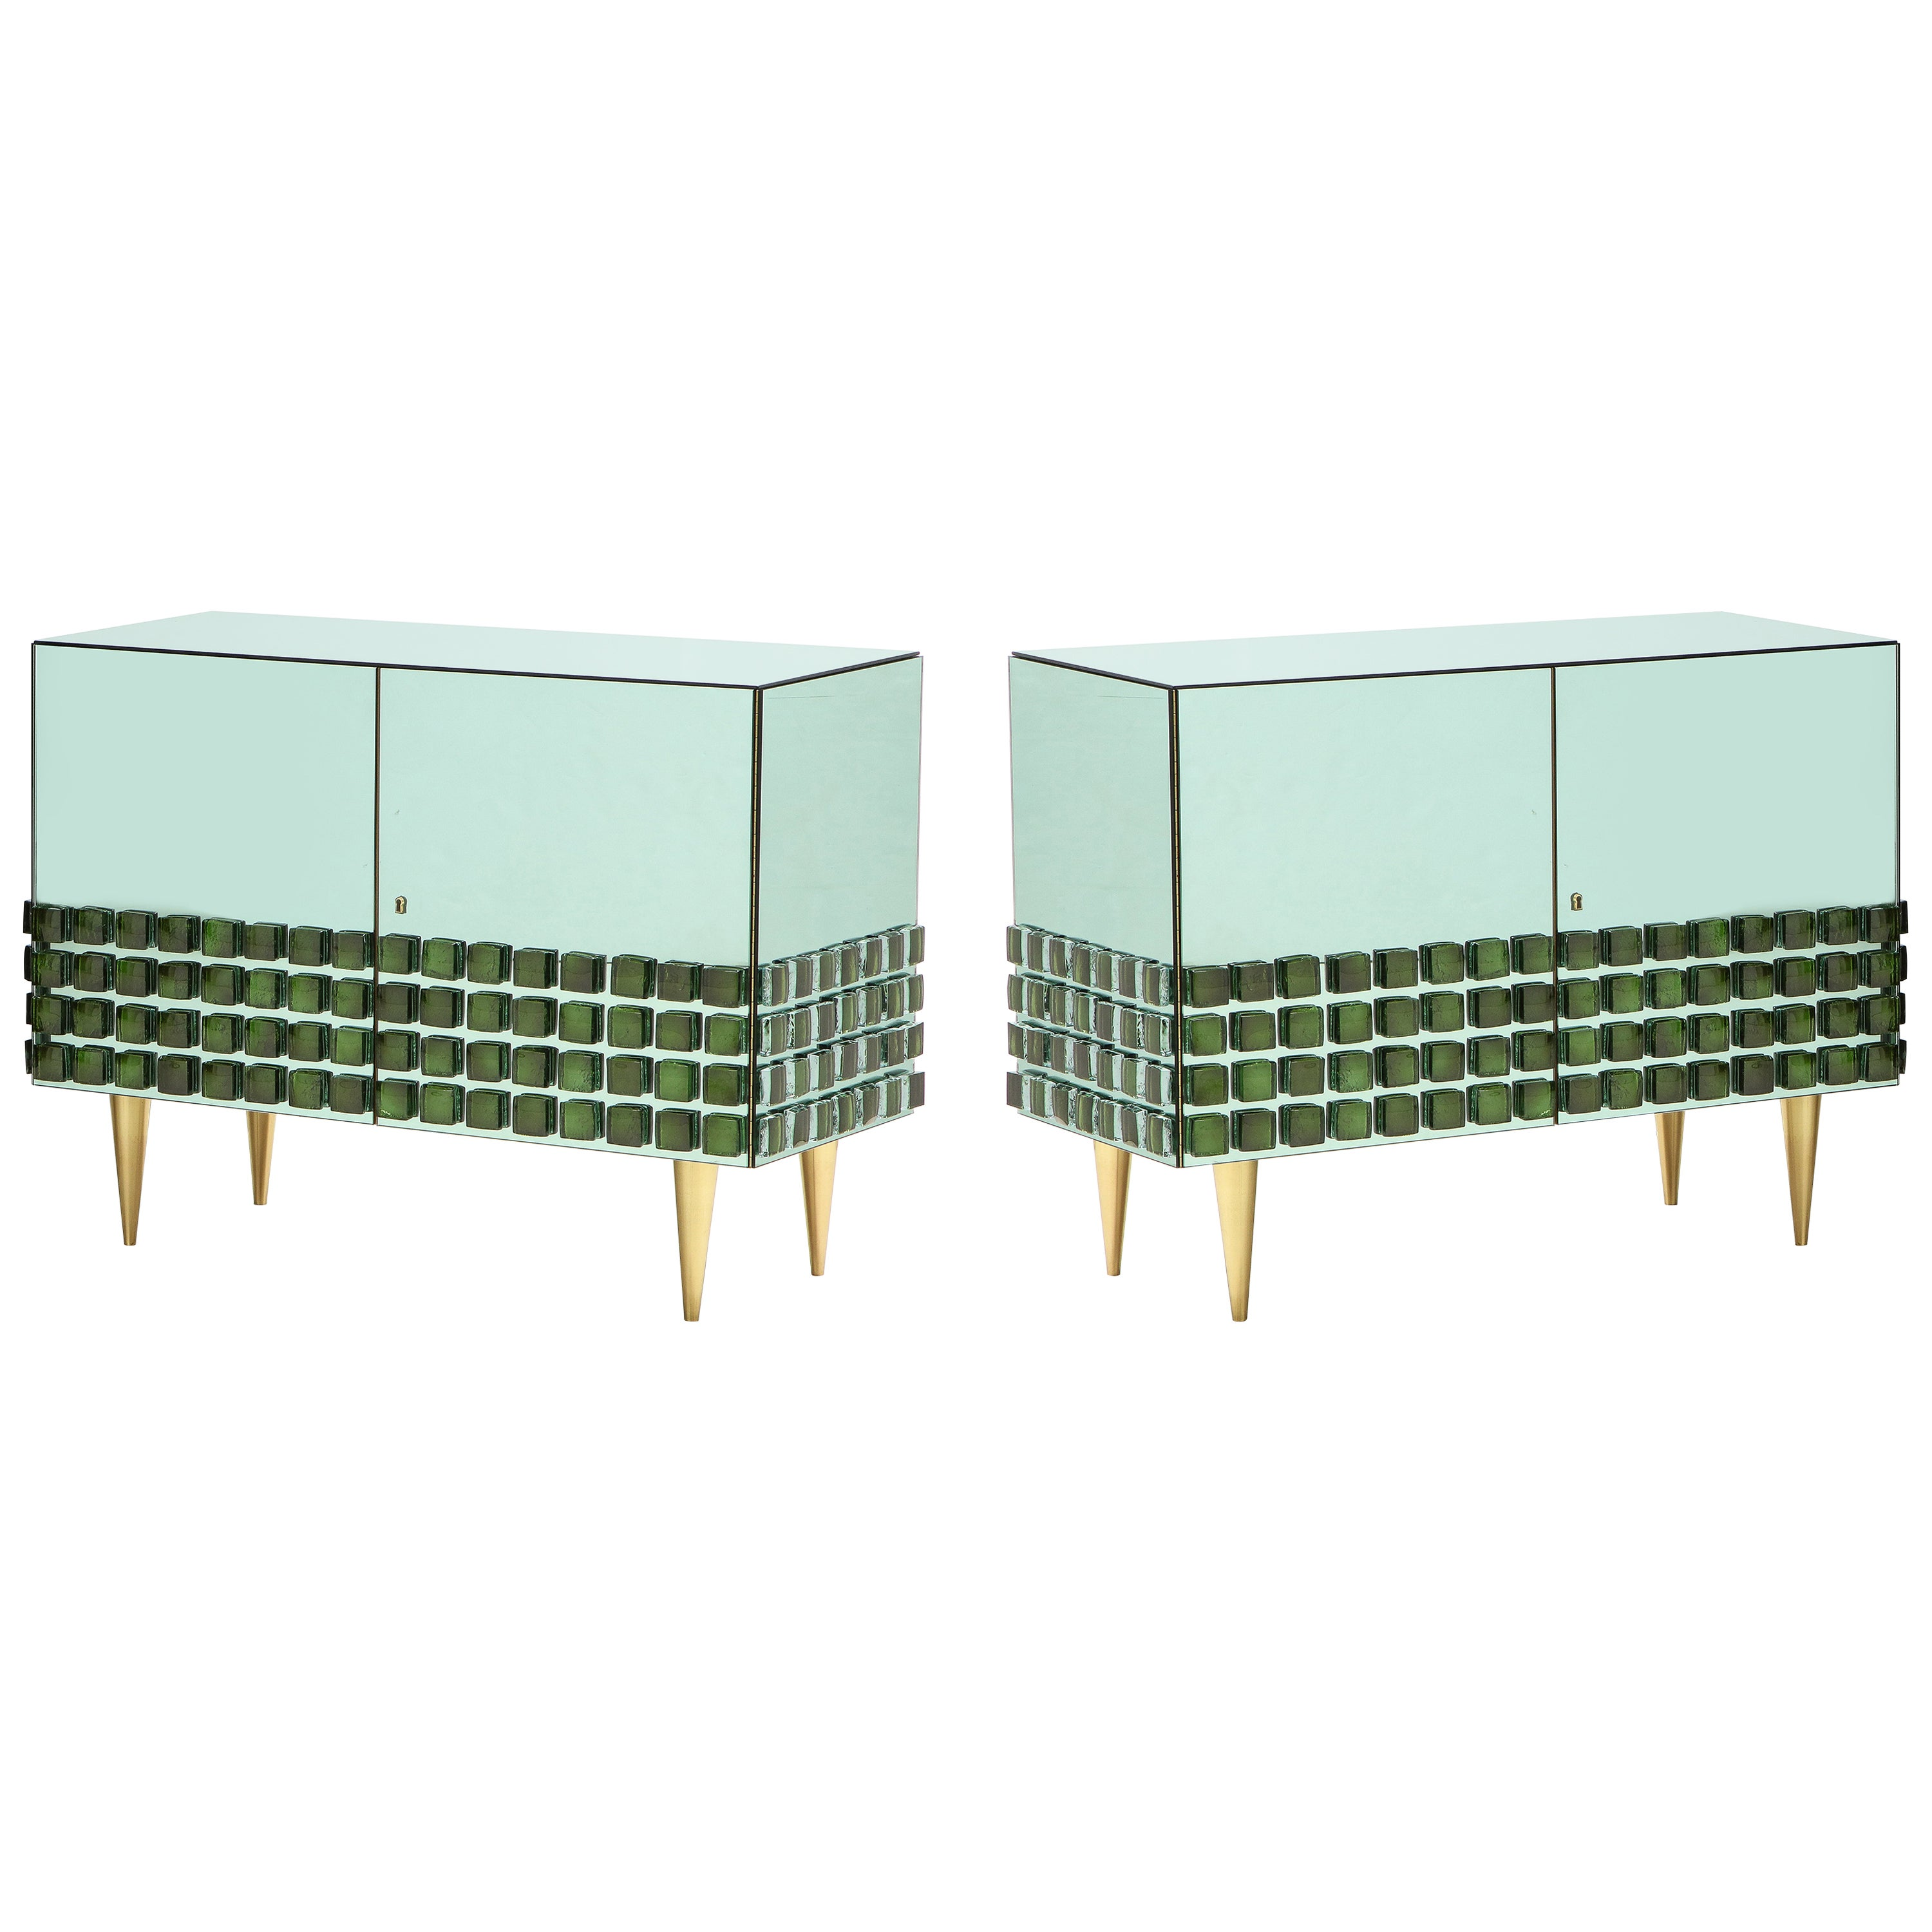 Pair of Emerald Green Mirrored Murano Glass and Brass Sideboards, Italy, 2021